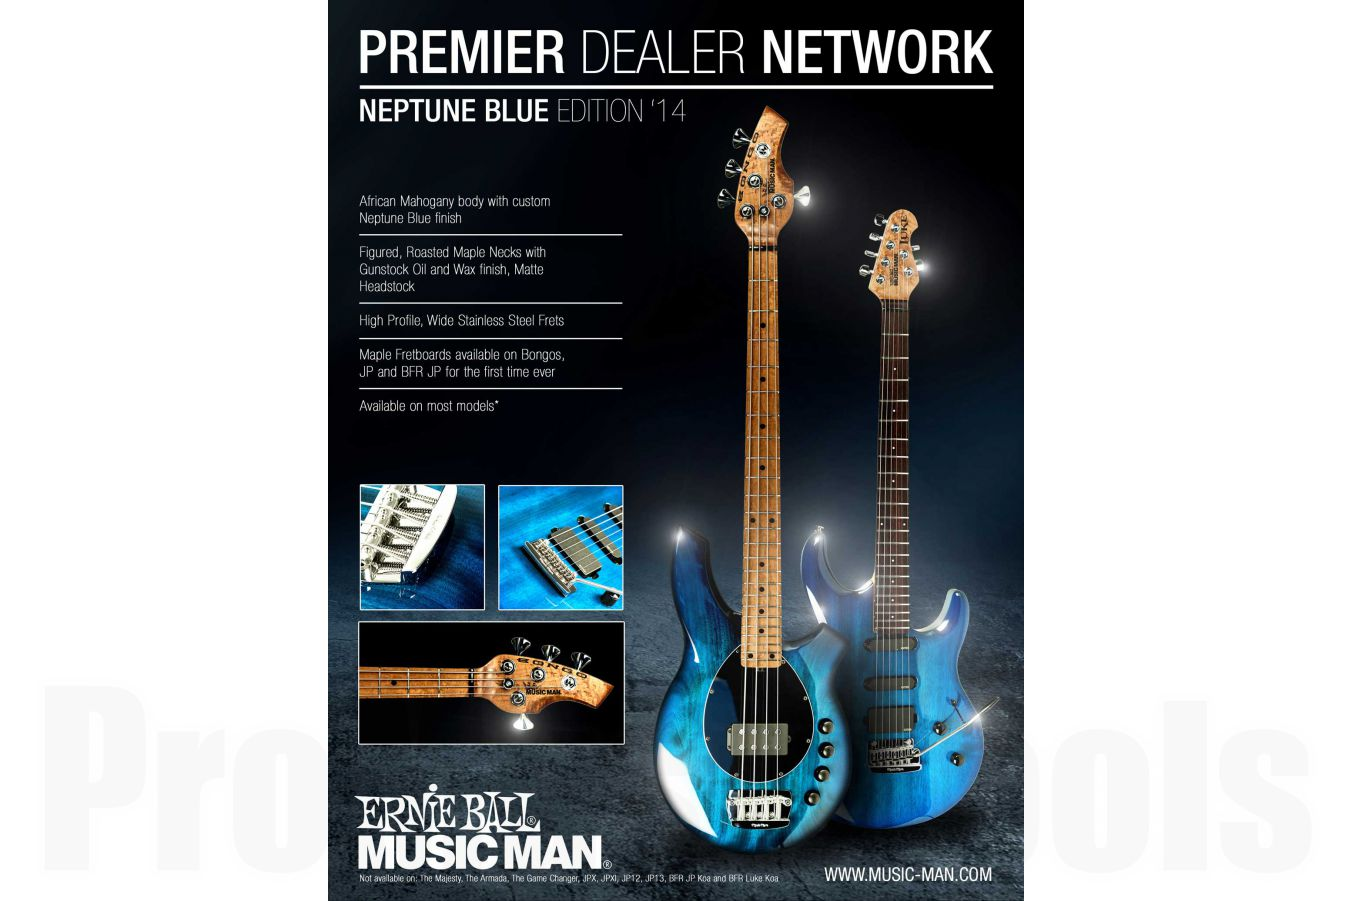 Music Man USA Albert Lee HH STD NB - PDN Neptune Blue Roasted Neck Limited Edition